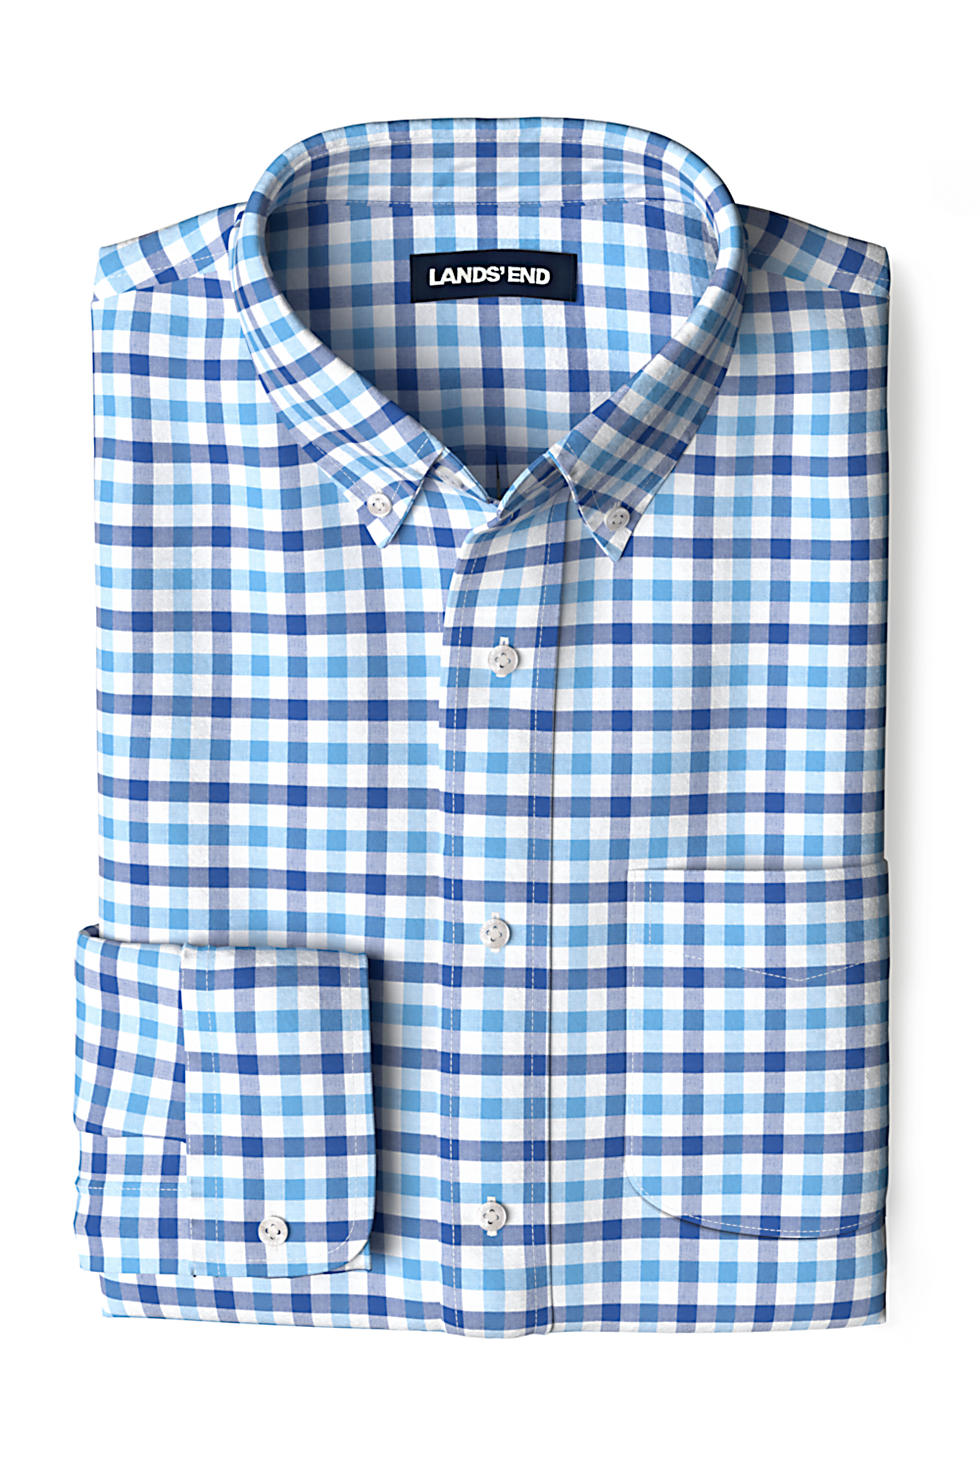 Lands End Mens Traditional Fit Essential Lightweight Poplin Shirt (various styles/sizes)